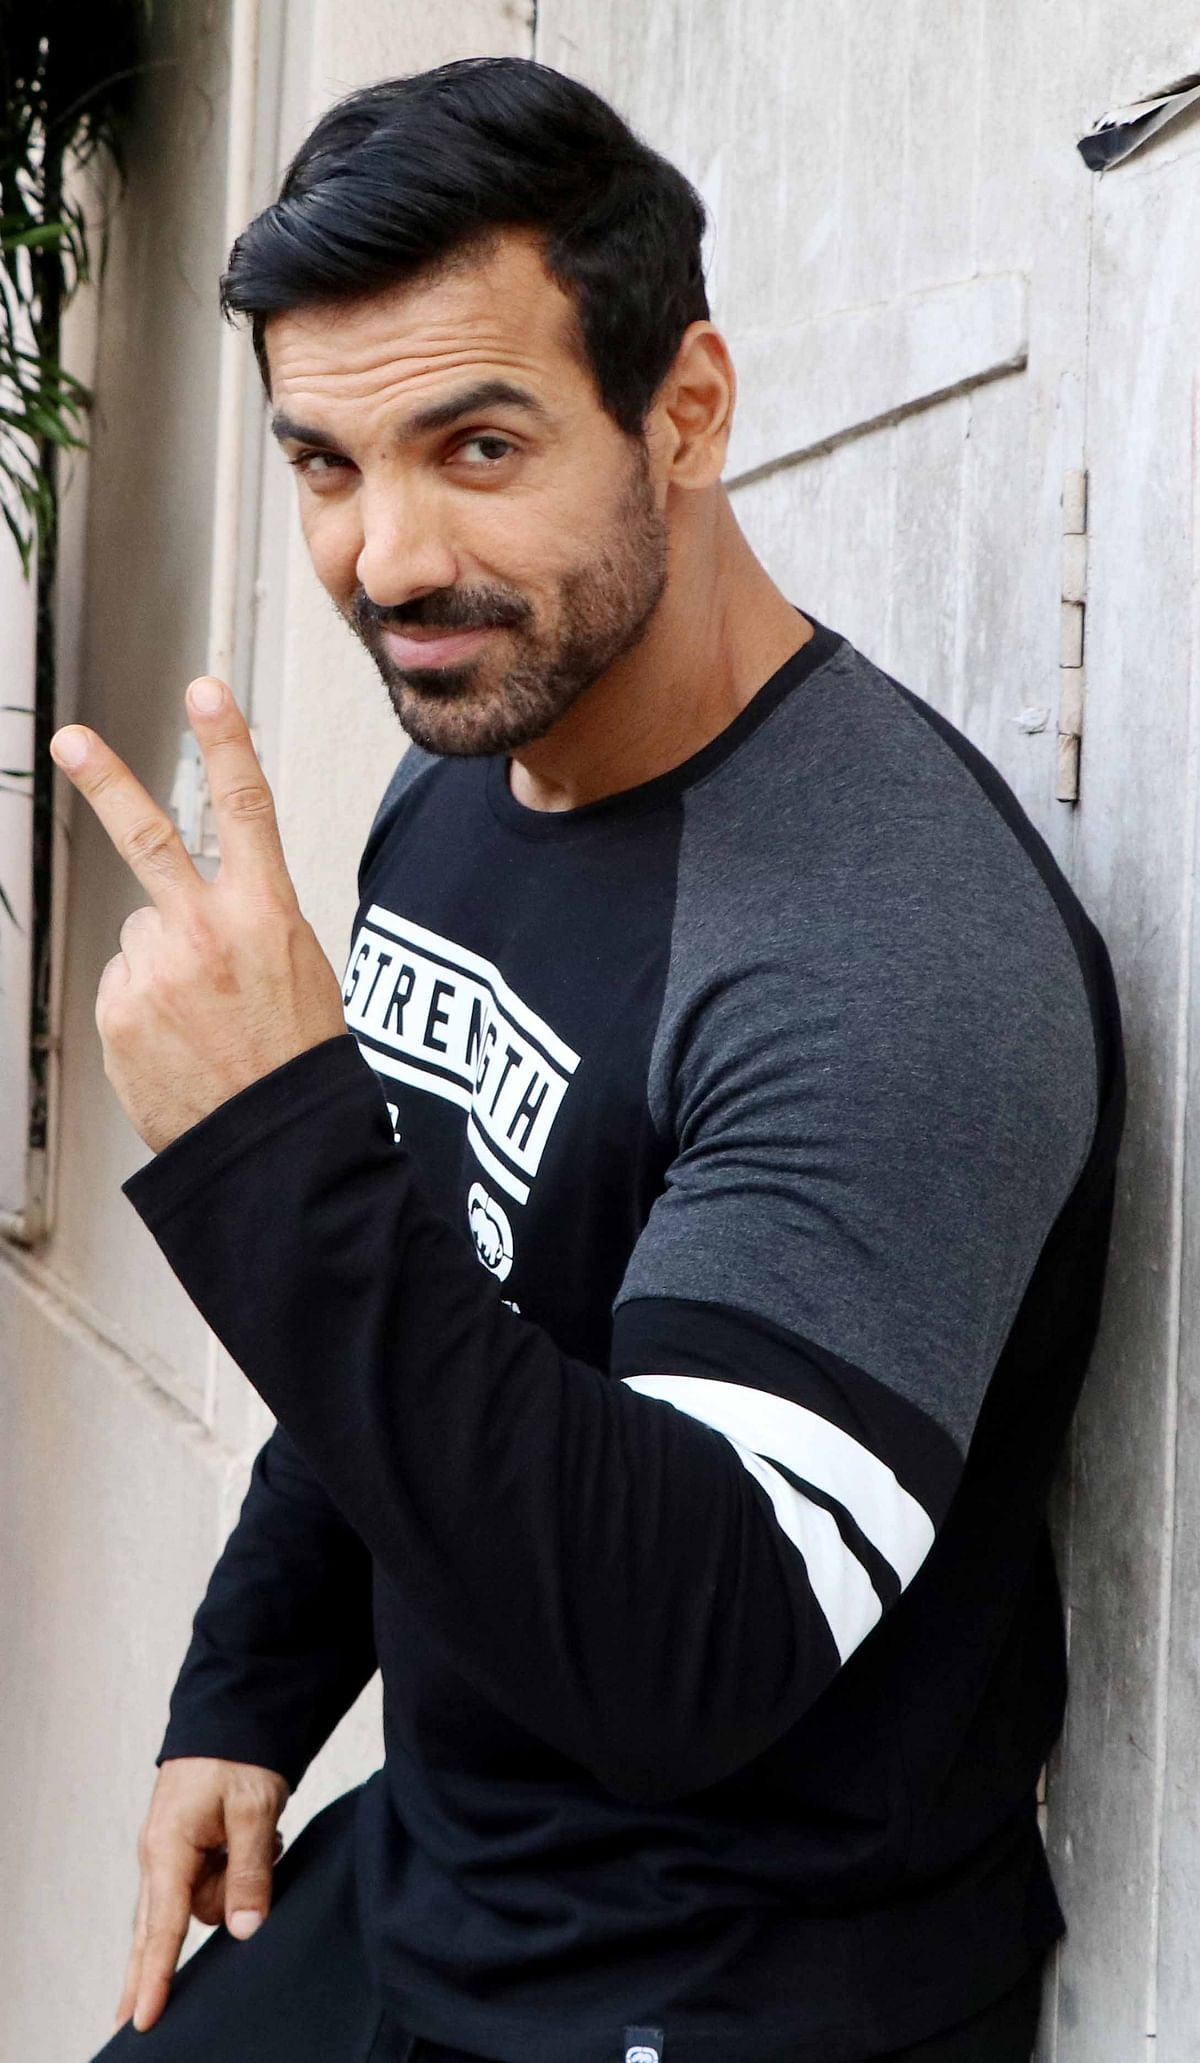 John Abraham feels that stuntmen need to be respected and credited. (Photo: Yogen Shah)